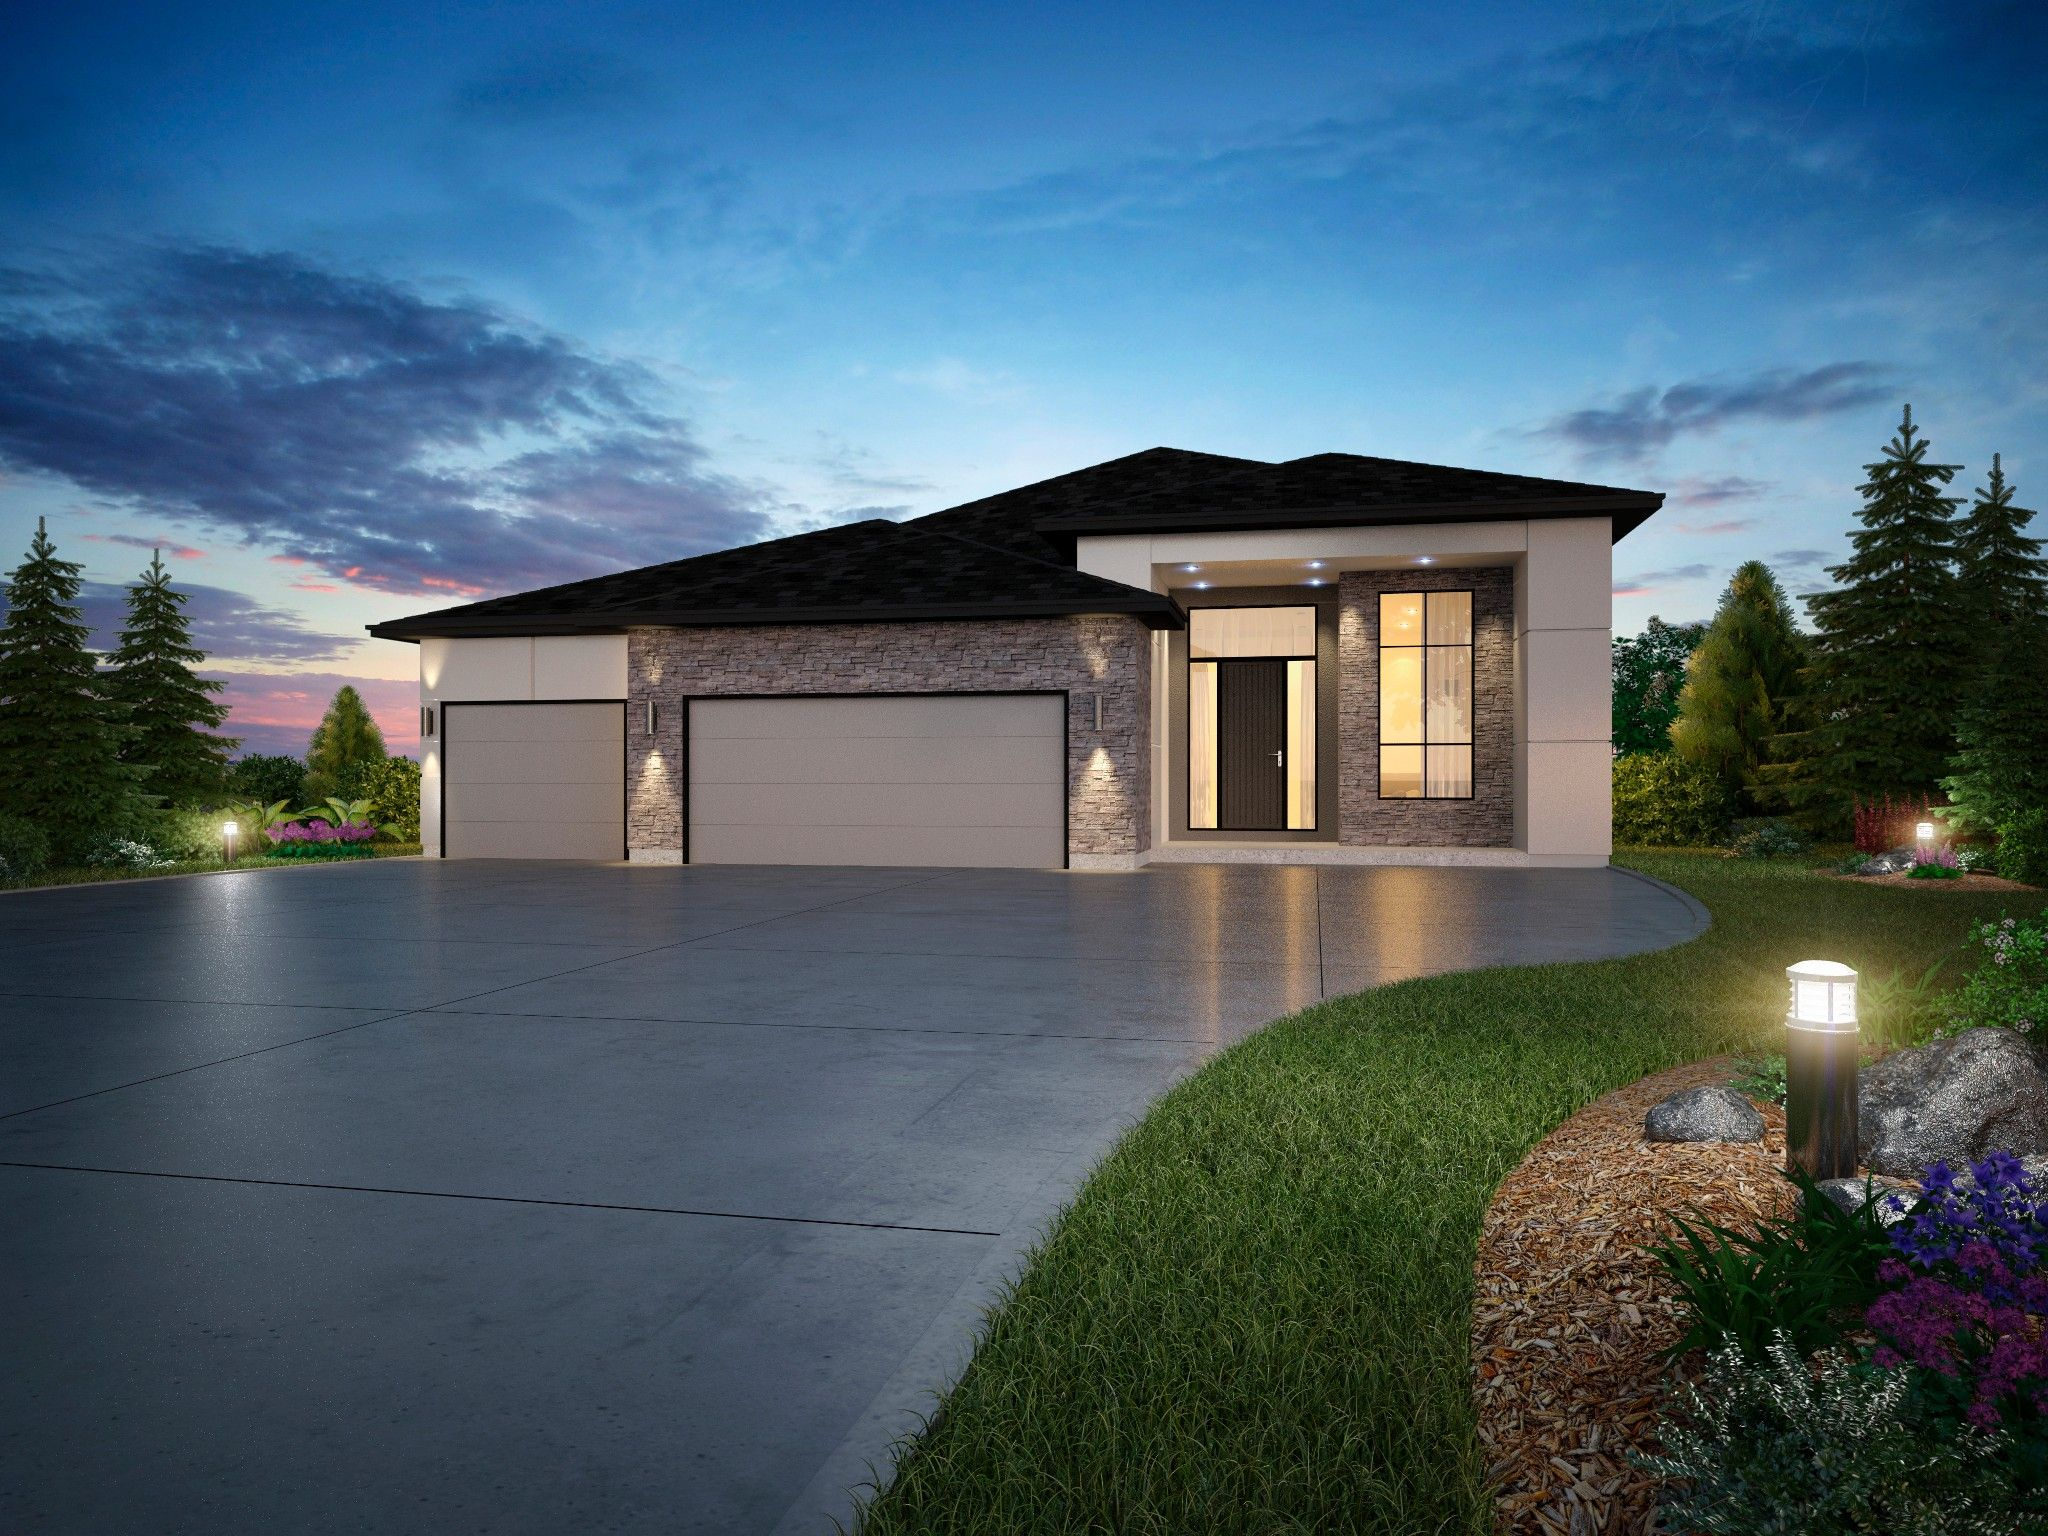 Main Photo: 31 Dovetail Crescent in Winnipeg: RM of MacDonald Single Family Detached for sale (R08)